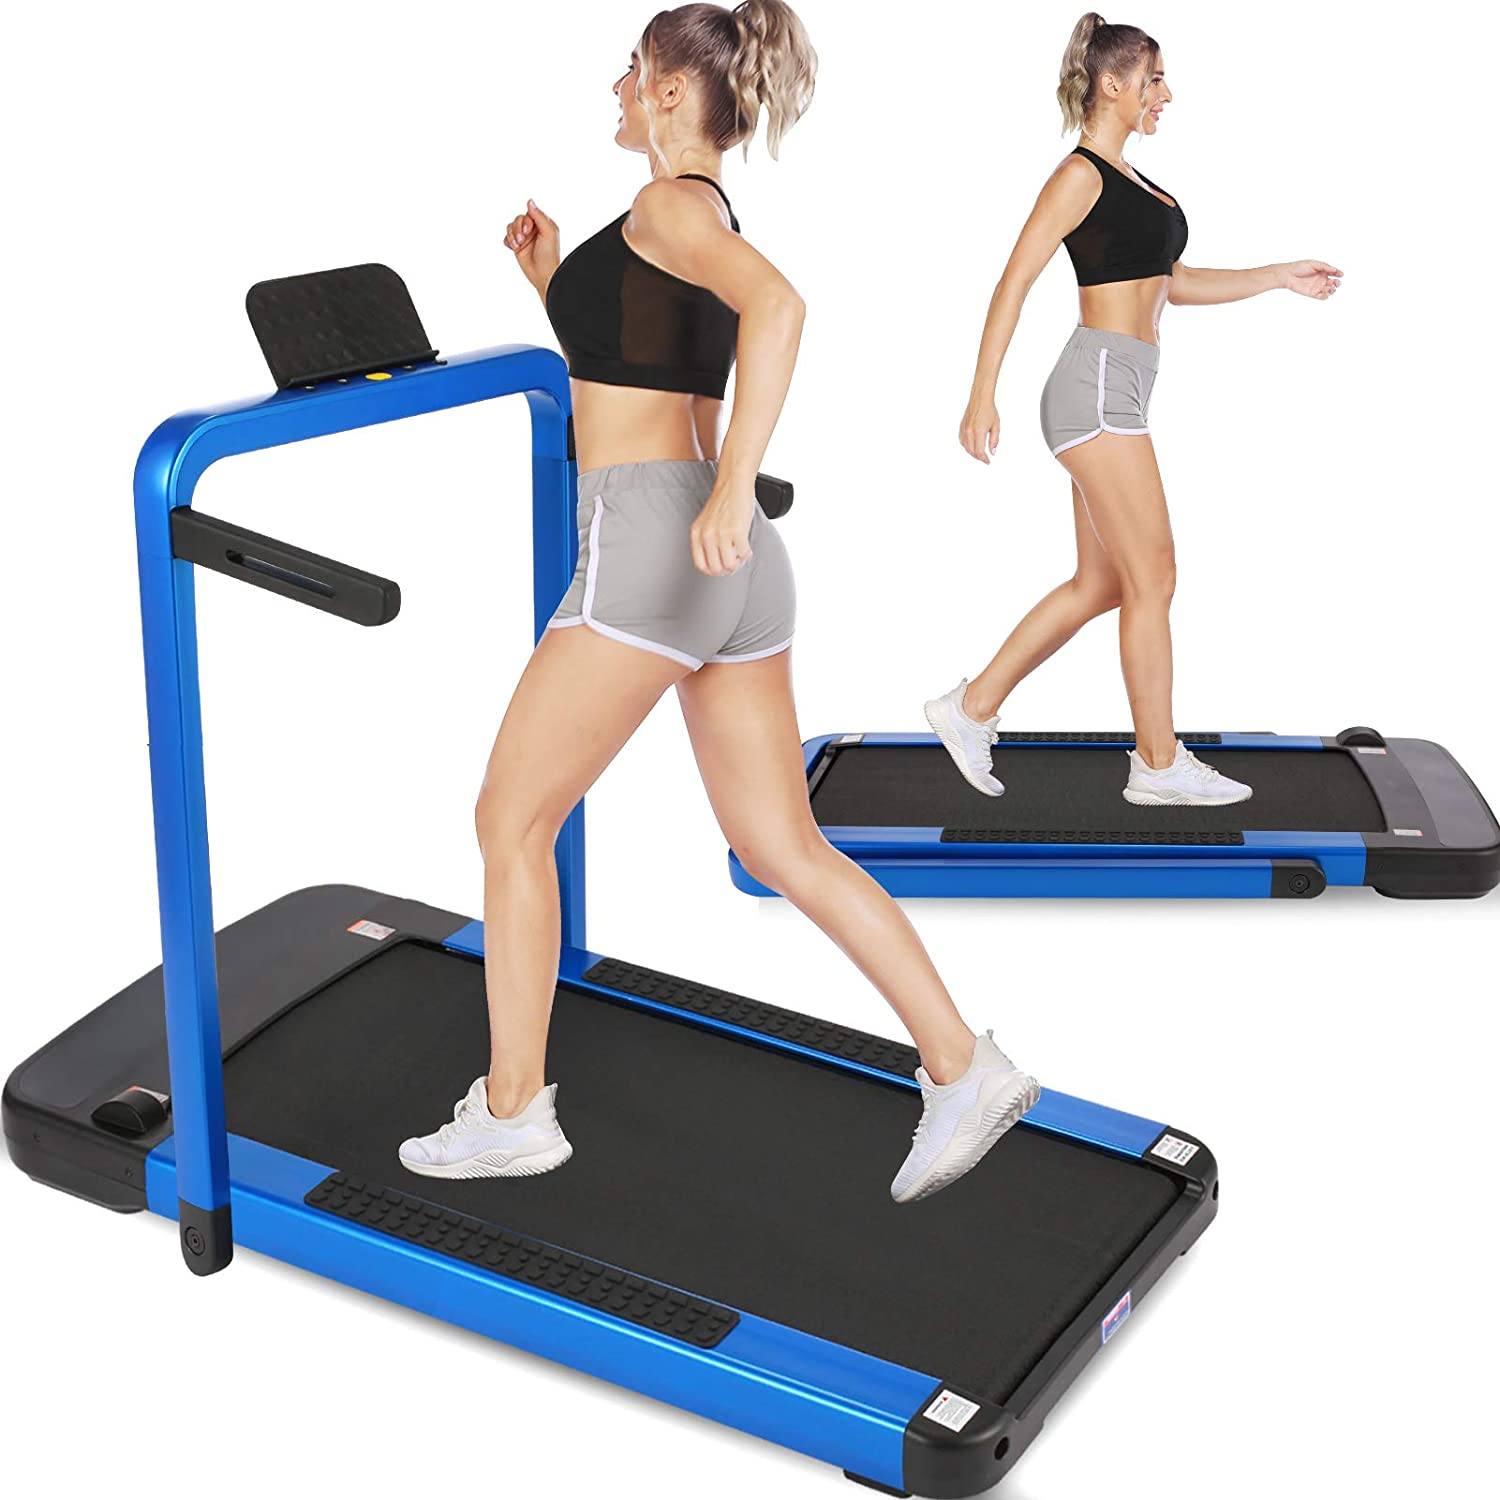 ANCHEER 2 in 1 Folding Treadmill for T Under Daily bargain 5% OFF sale Electric Home Desk